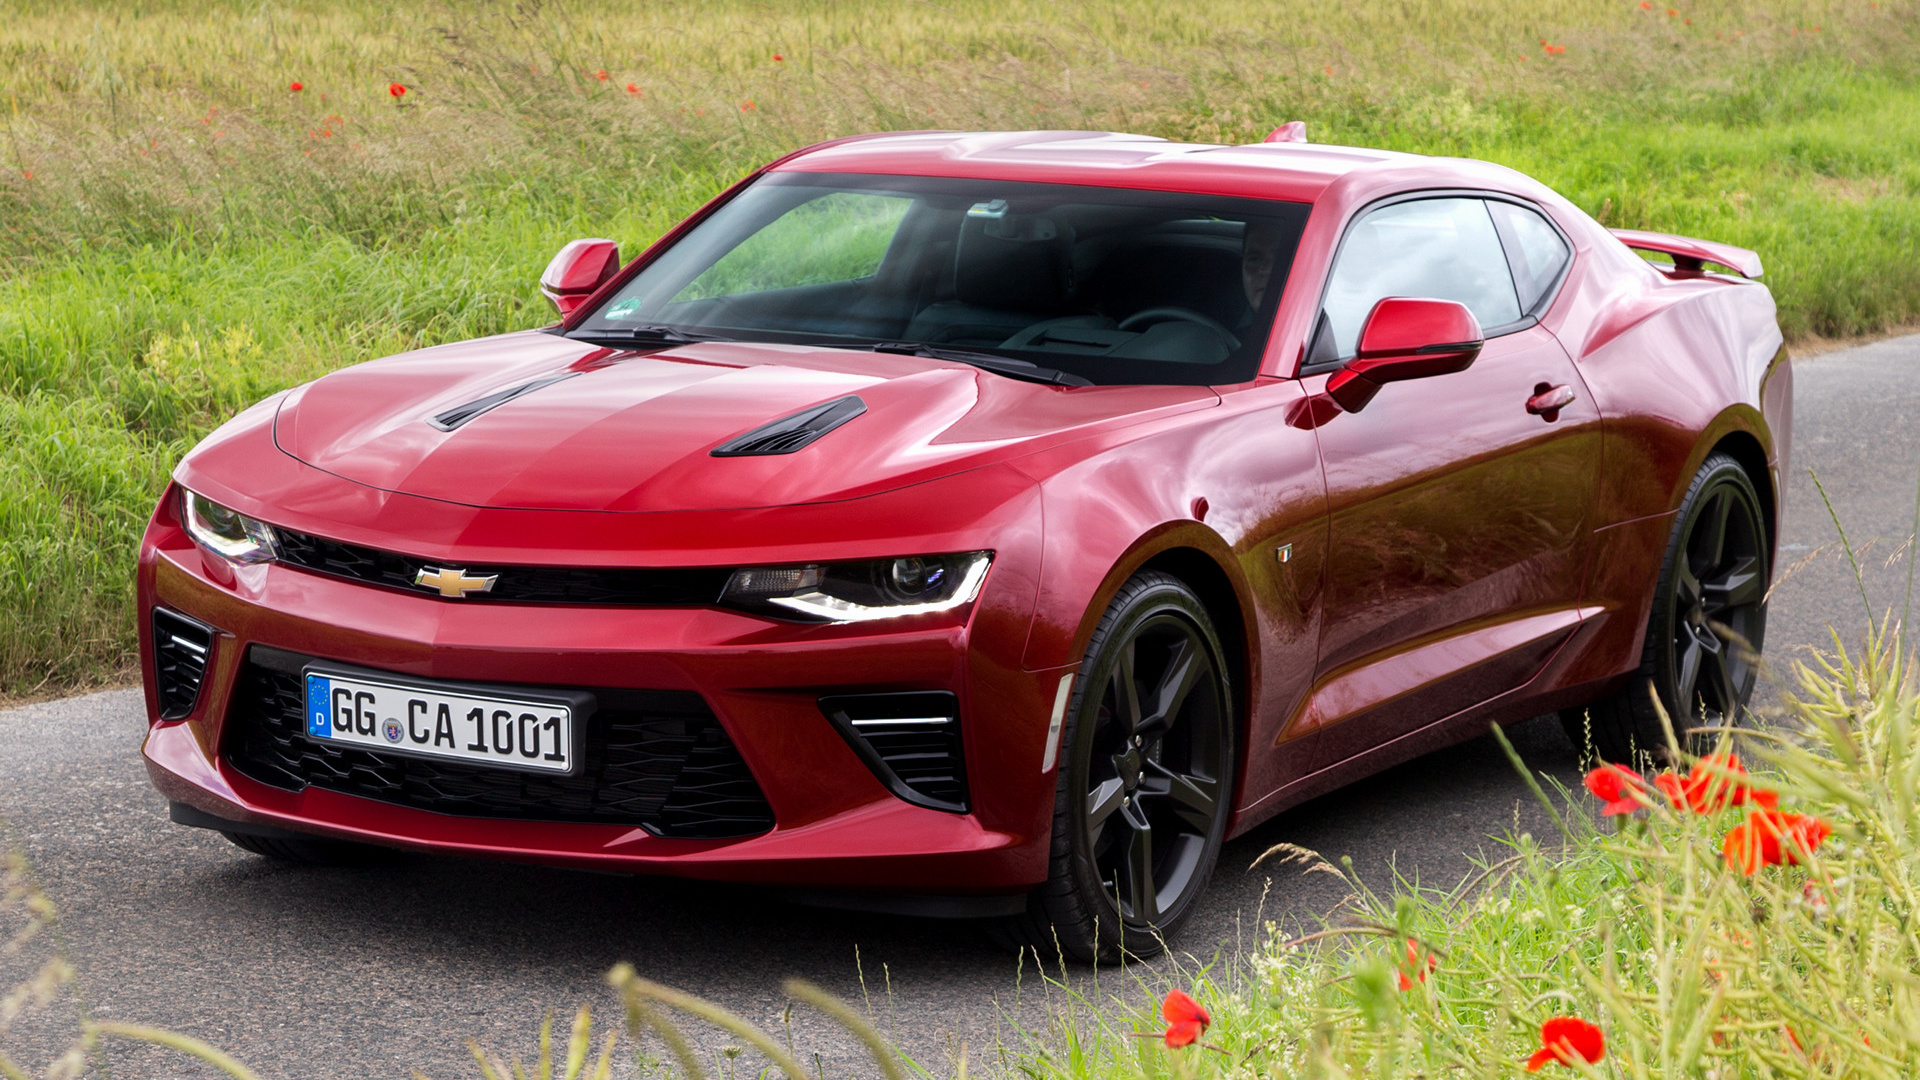 2017 Camaro 50Th Anniversary >> 2016 Chevrolet Camaro V8 (EU) - Wallpapers and HD Images ...